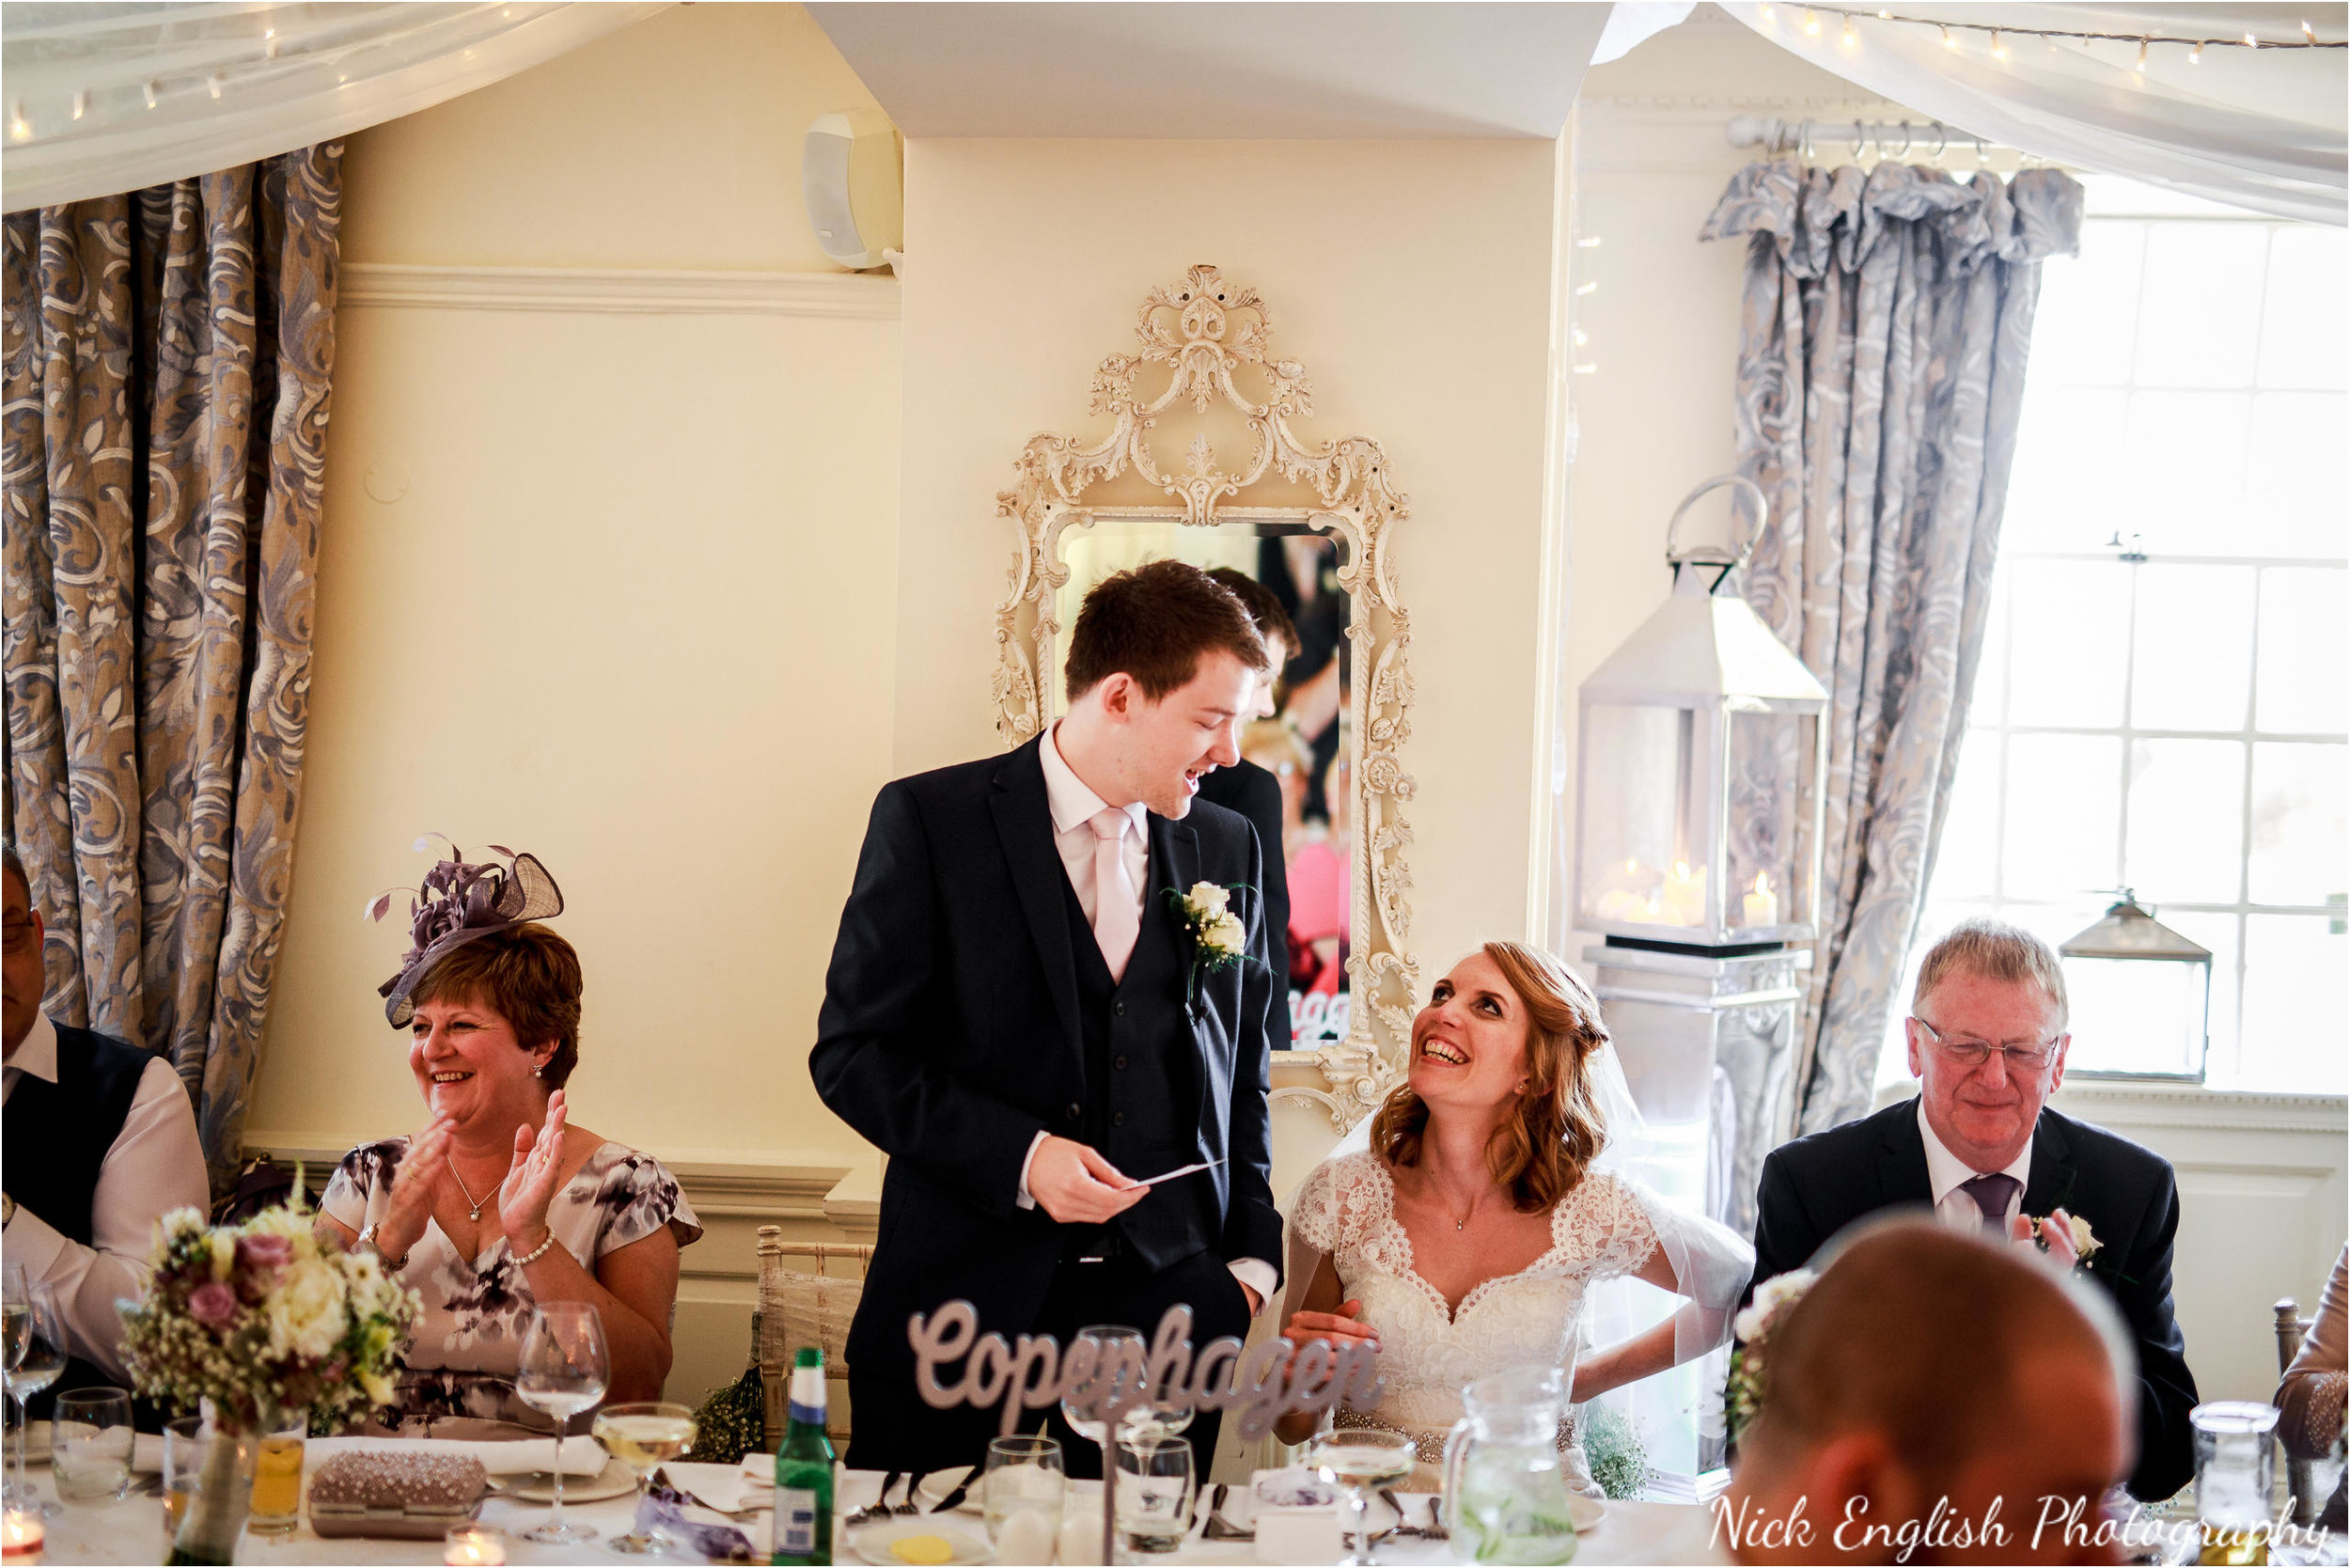 Alison James Wedding Photographs at Eaves Hall West Bradford 175jpg.jpeg